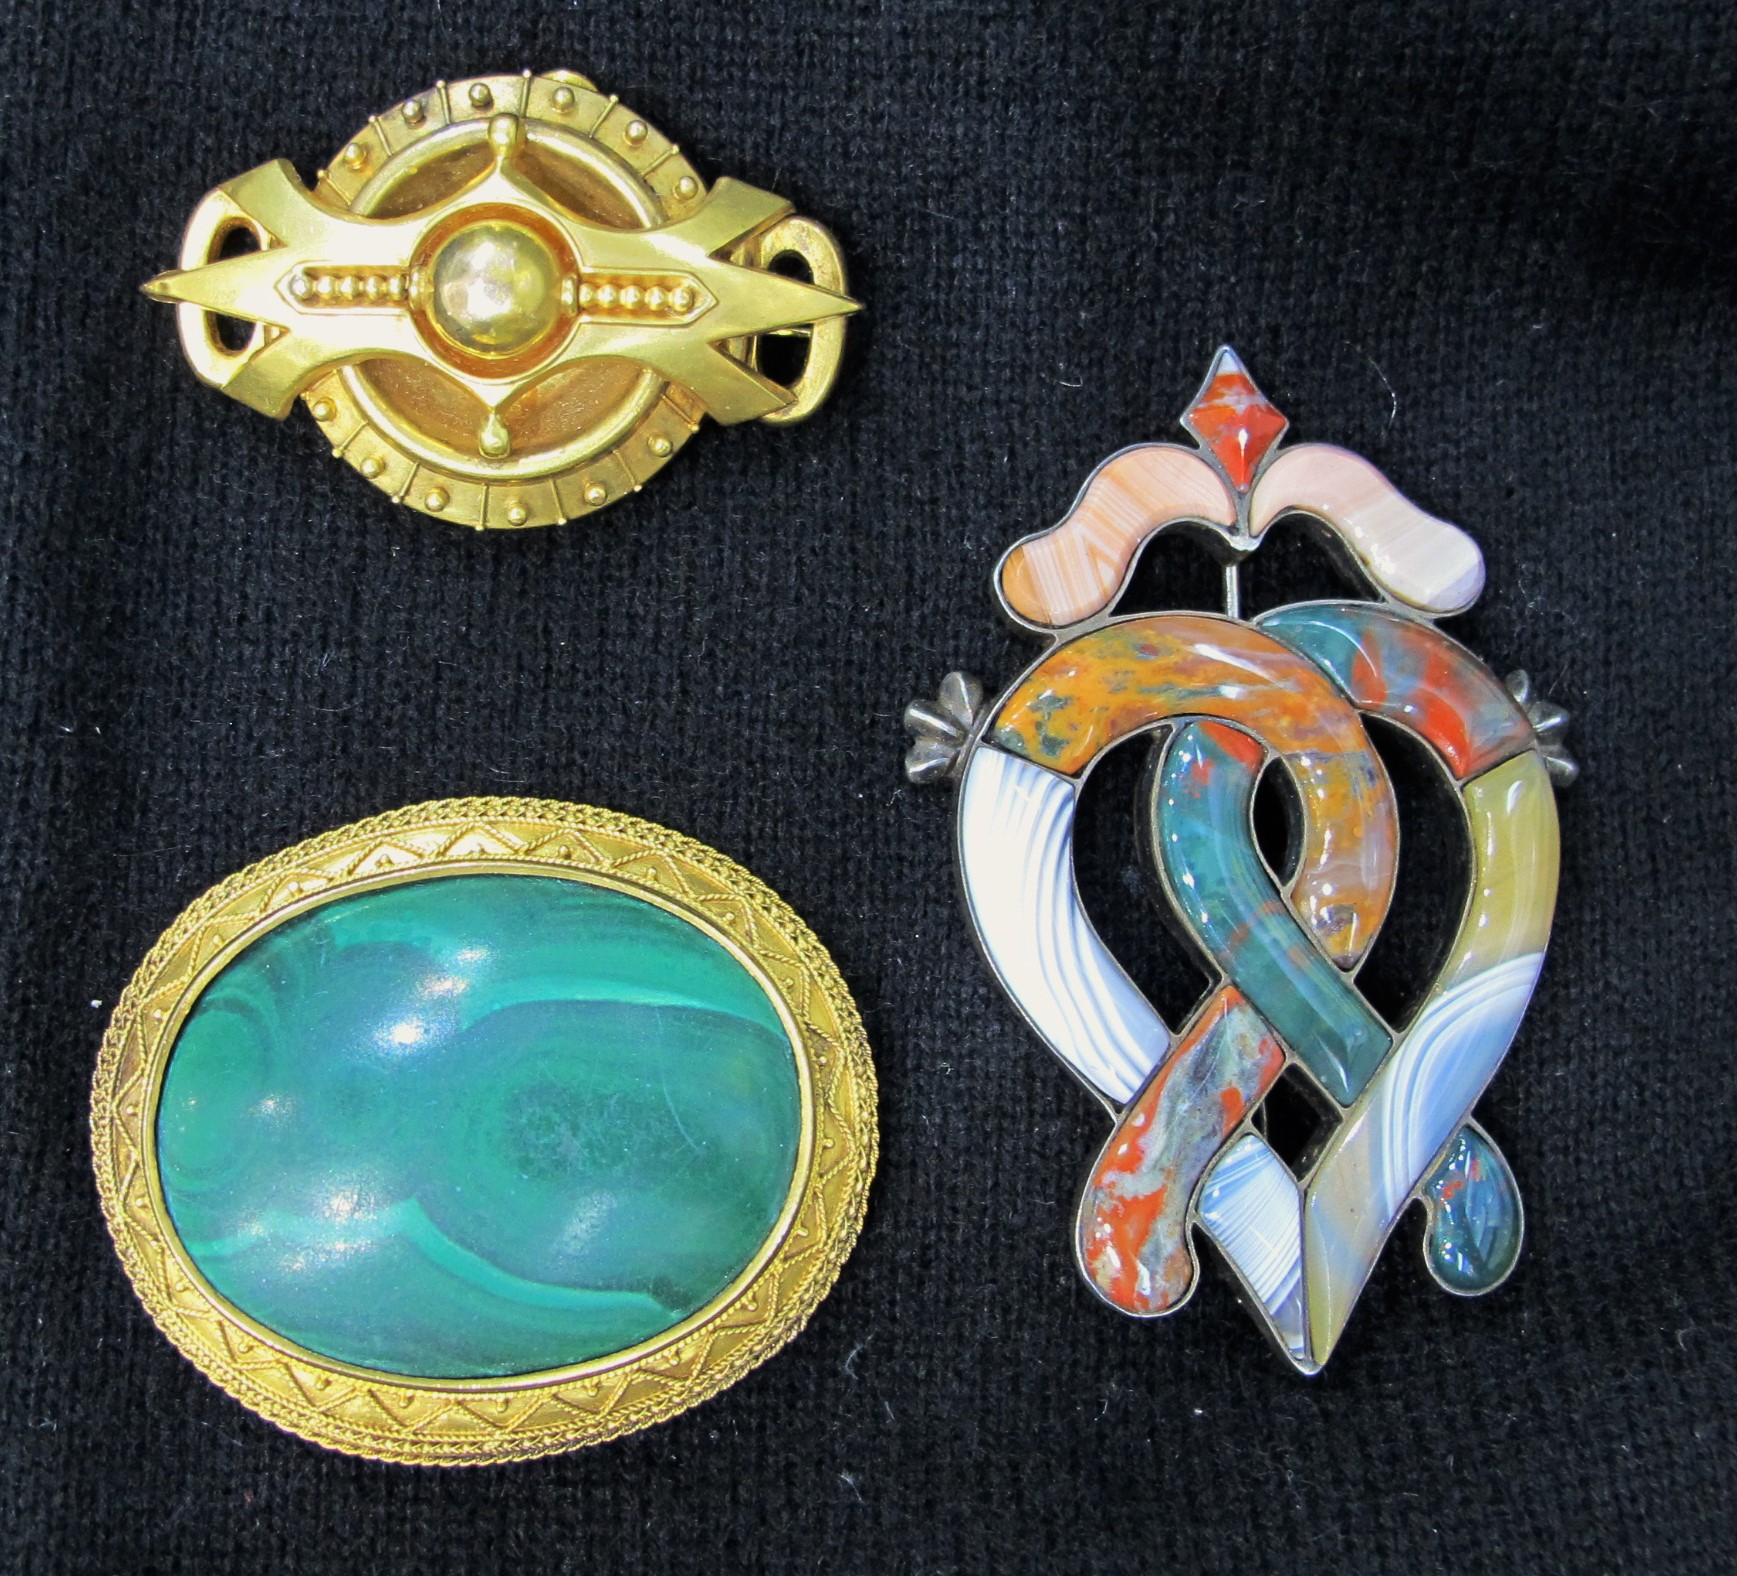 Assortment of Victorian gold & gemstone brooches, all currently available at Gray & Davis.